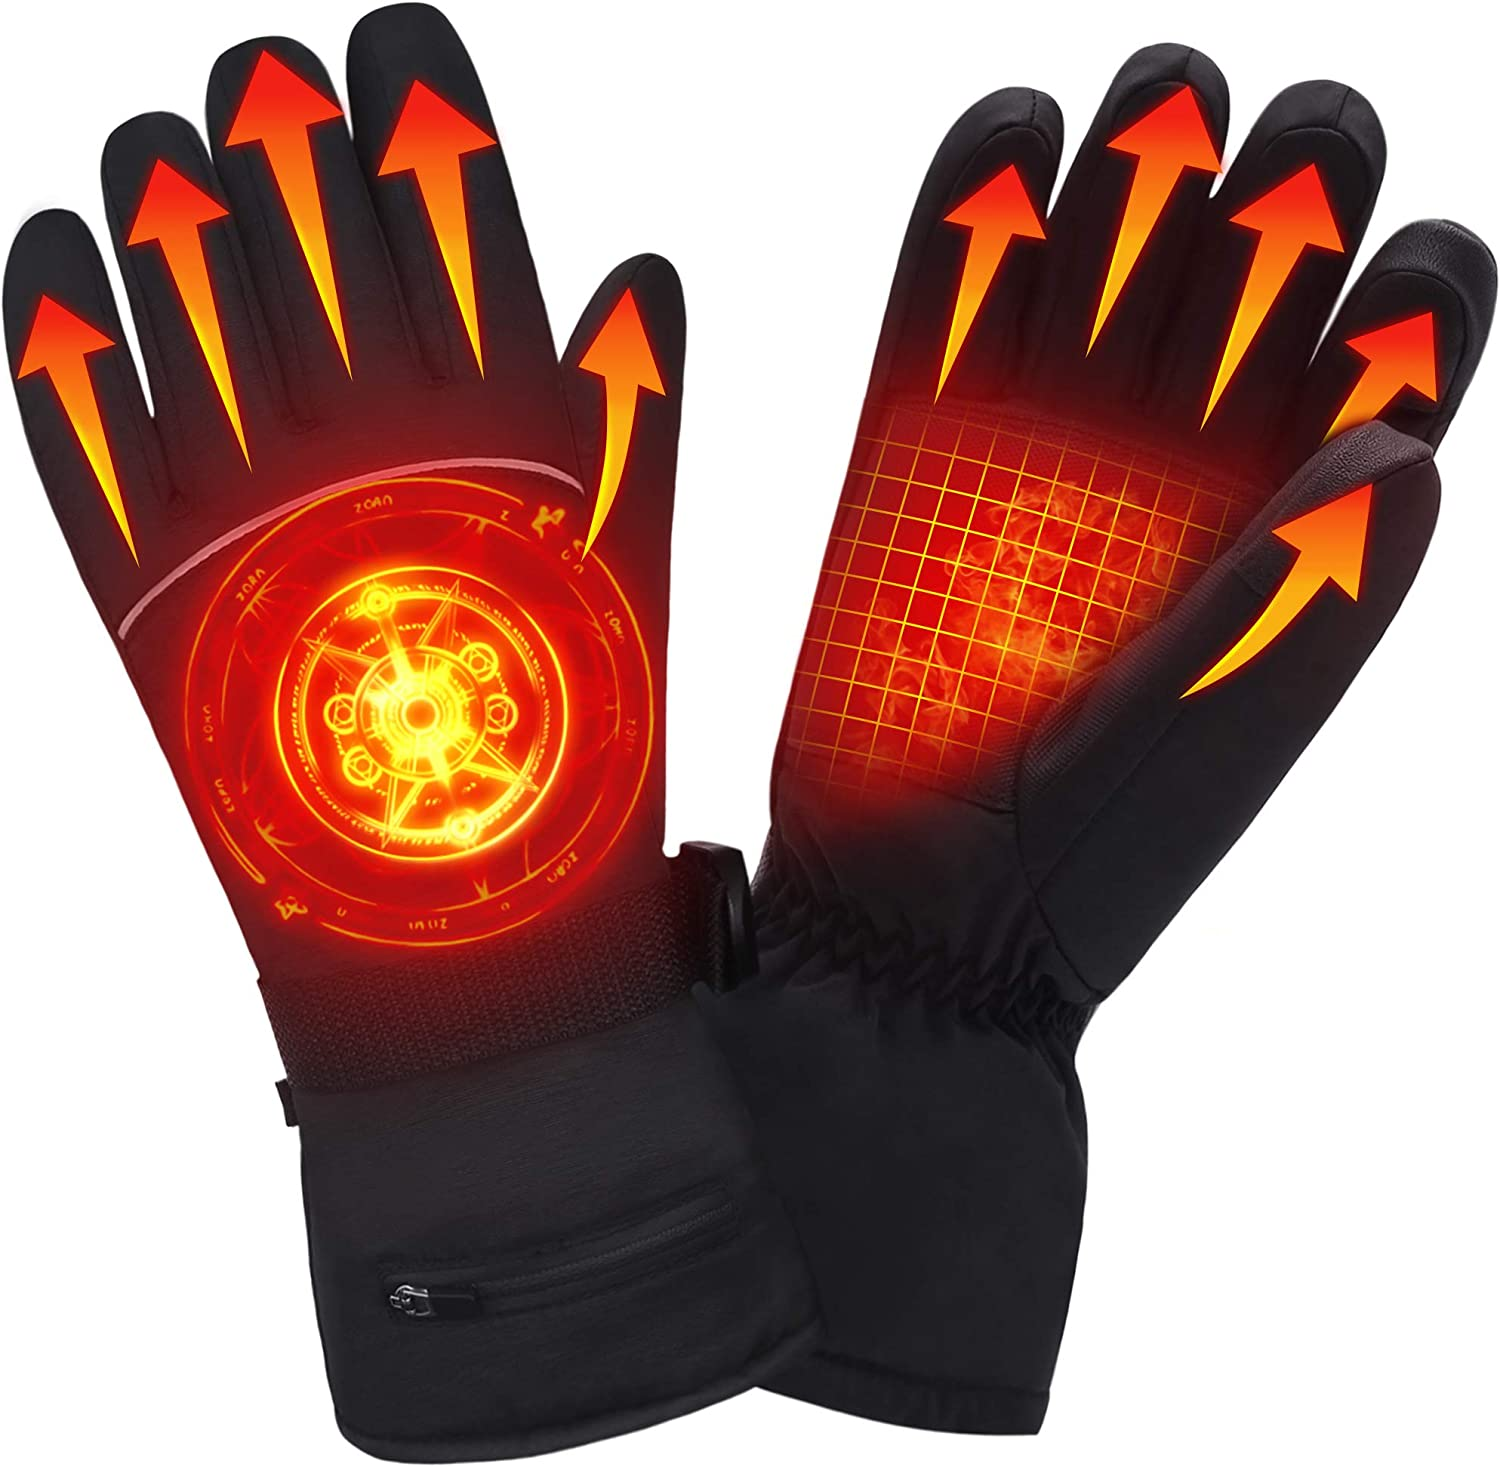 Heated Gloves/Winter Warm Gloves with Rechargeable Battery for Men /& Women Thermal Windproof Waterproof Insulated Gloves for/Motorcycle Skiing/Riding Climbing